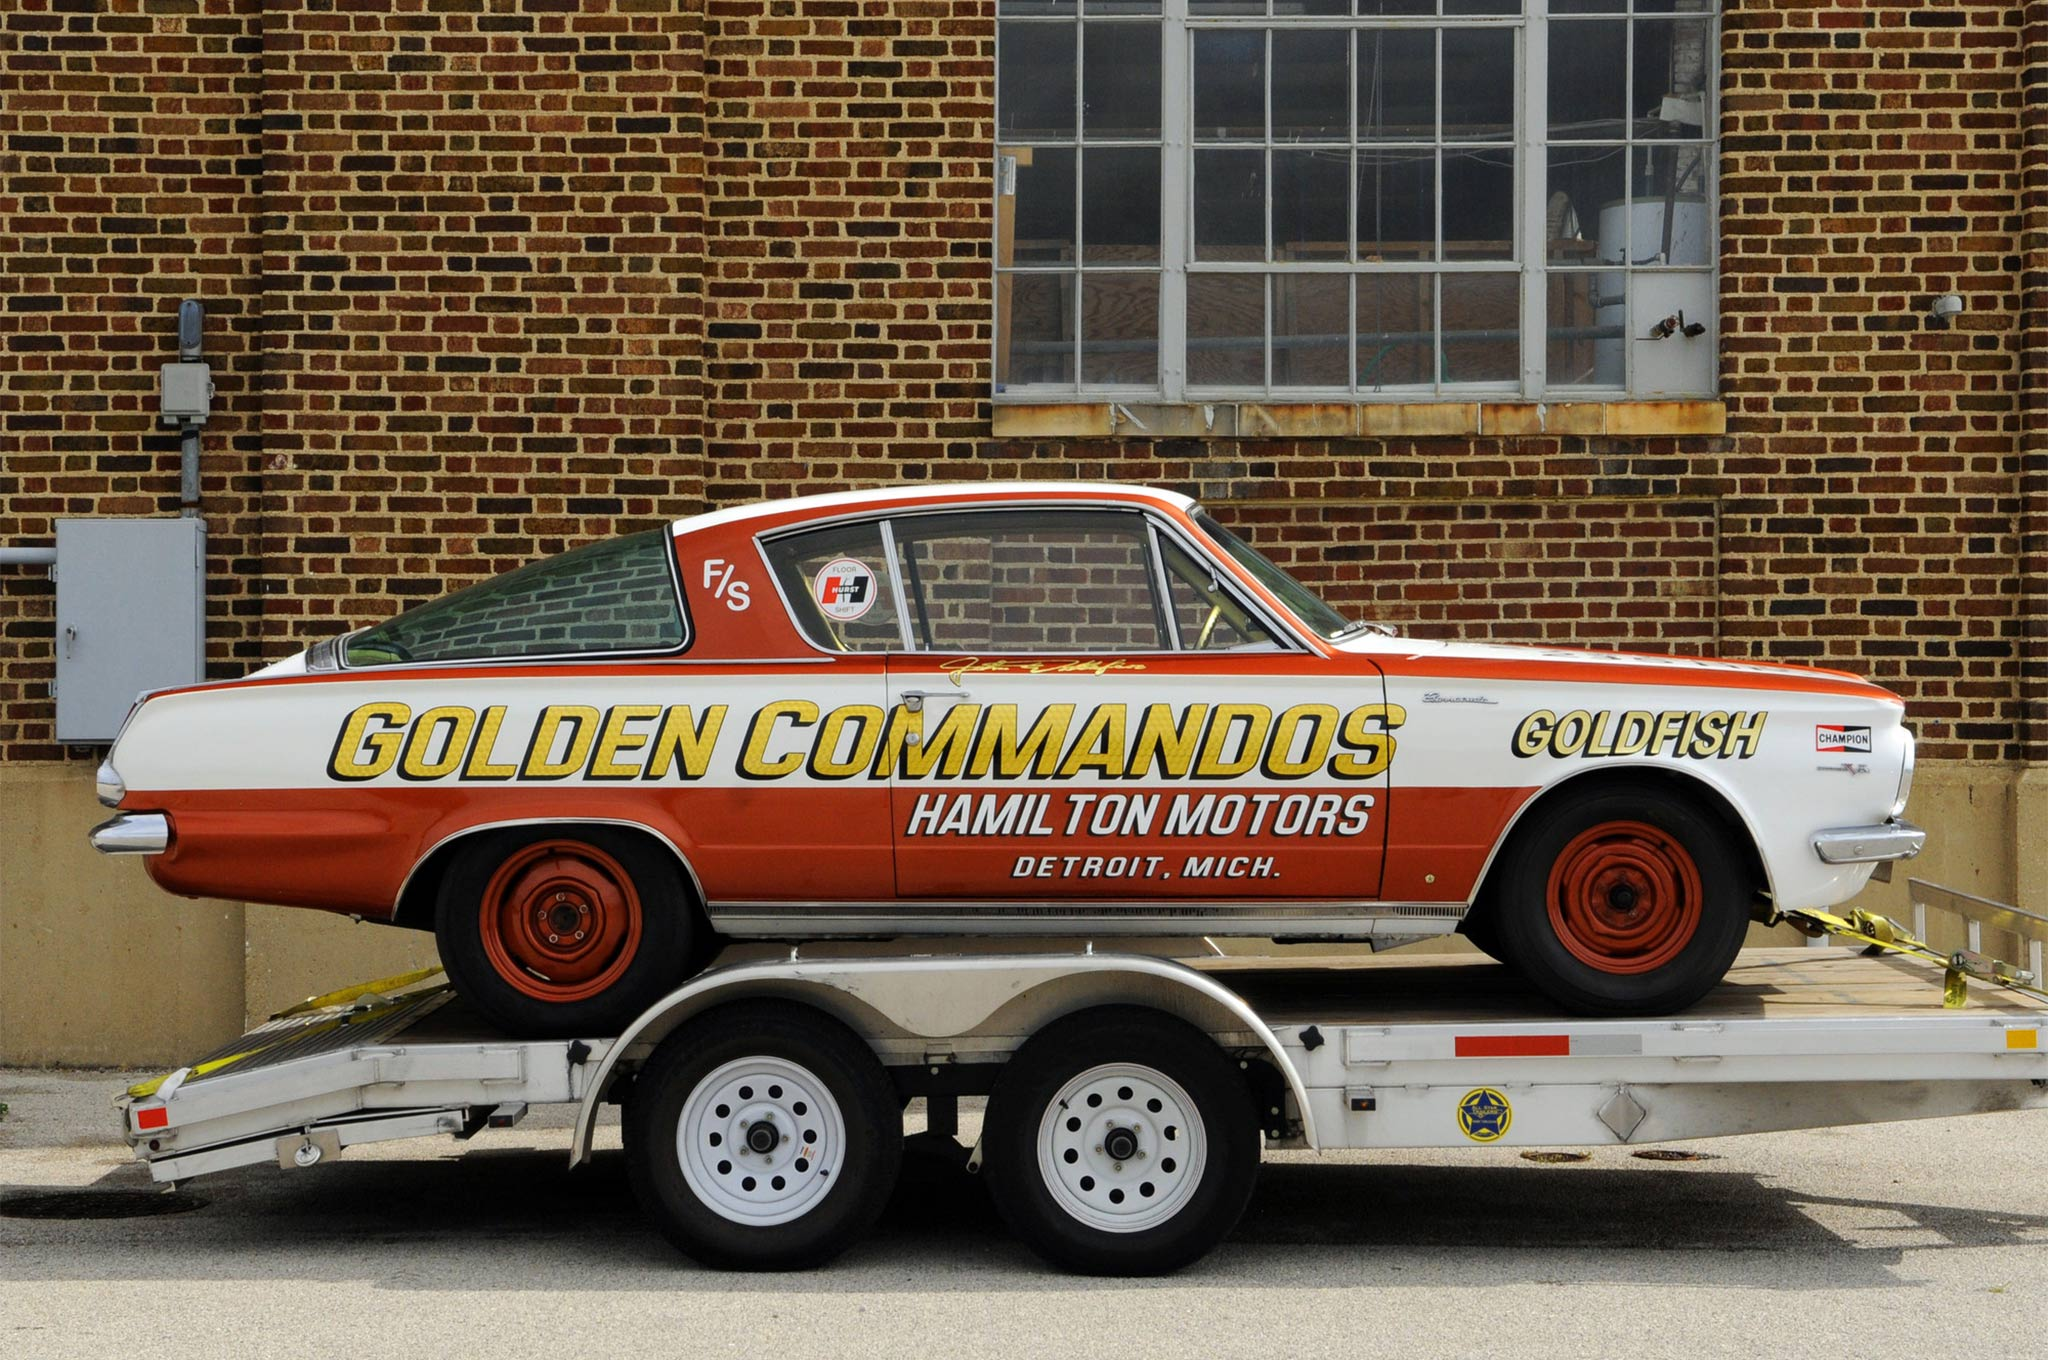 Fish out of water? Not really; the heyday of Junior Stock found not just the classic shoeboxes but some of Detroit's hottest late-models involved. This is the recently completed restoration of the Plymouth-based Golden Commando's team, done by Bruce Lindstrom.